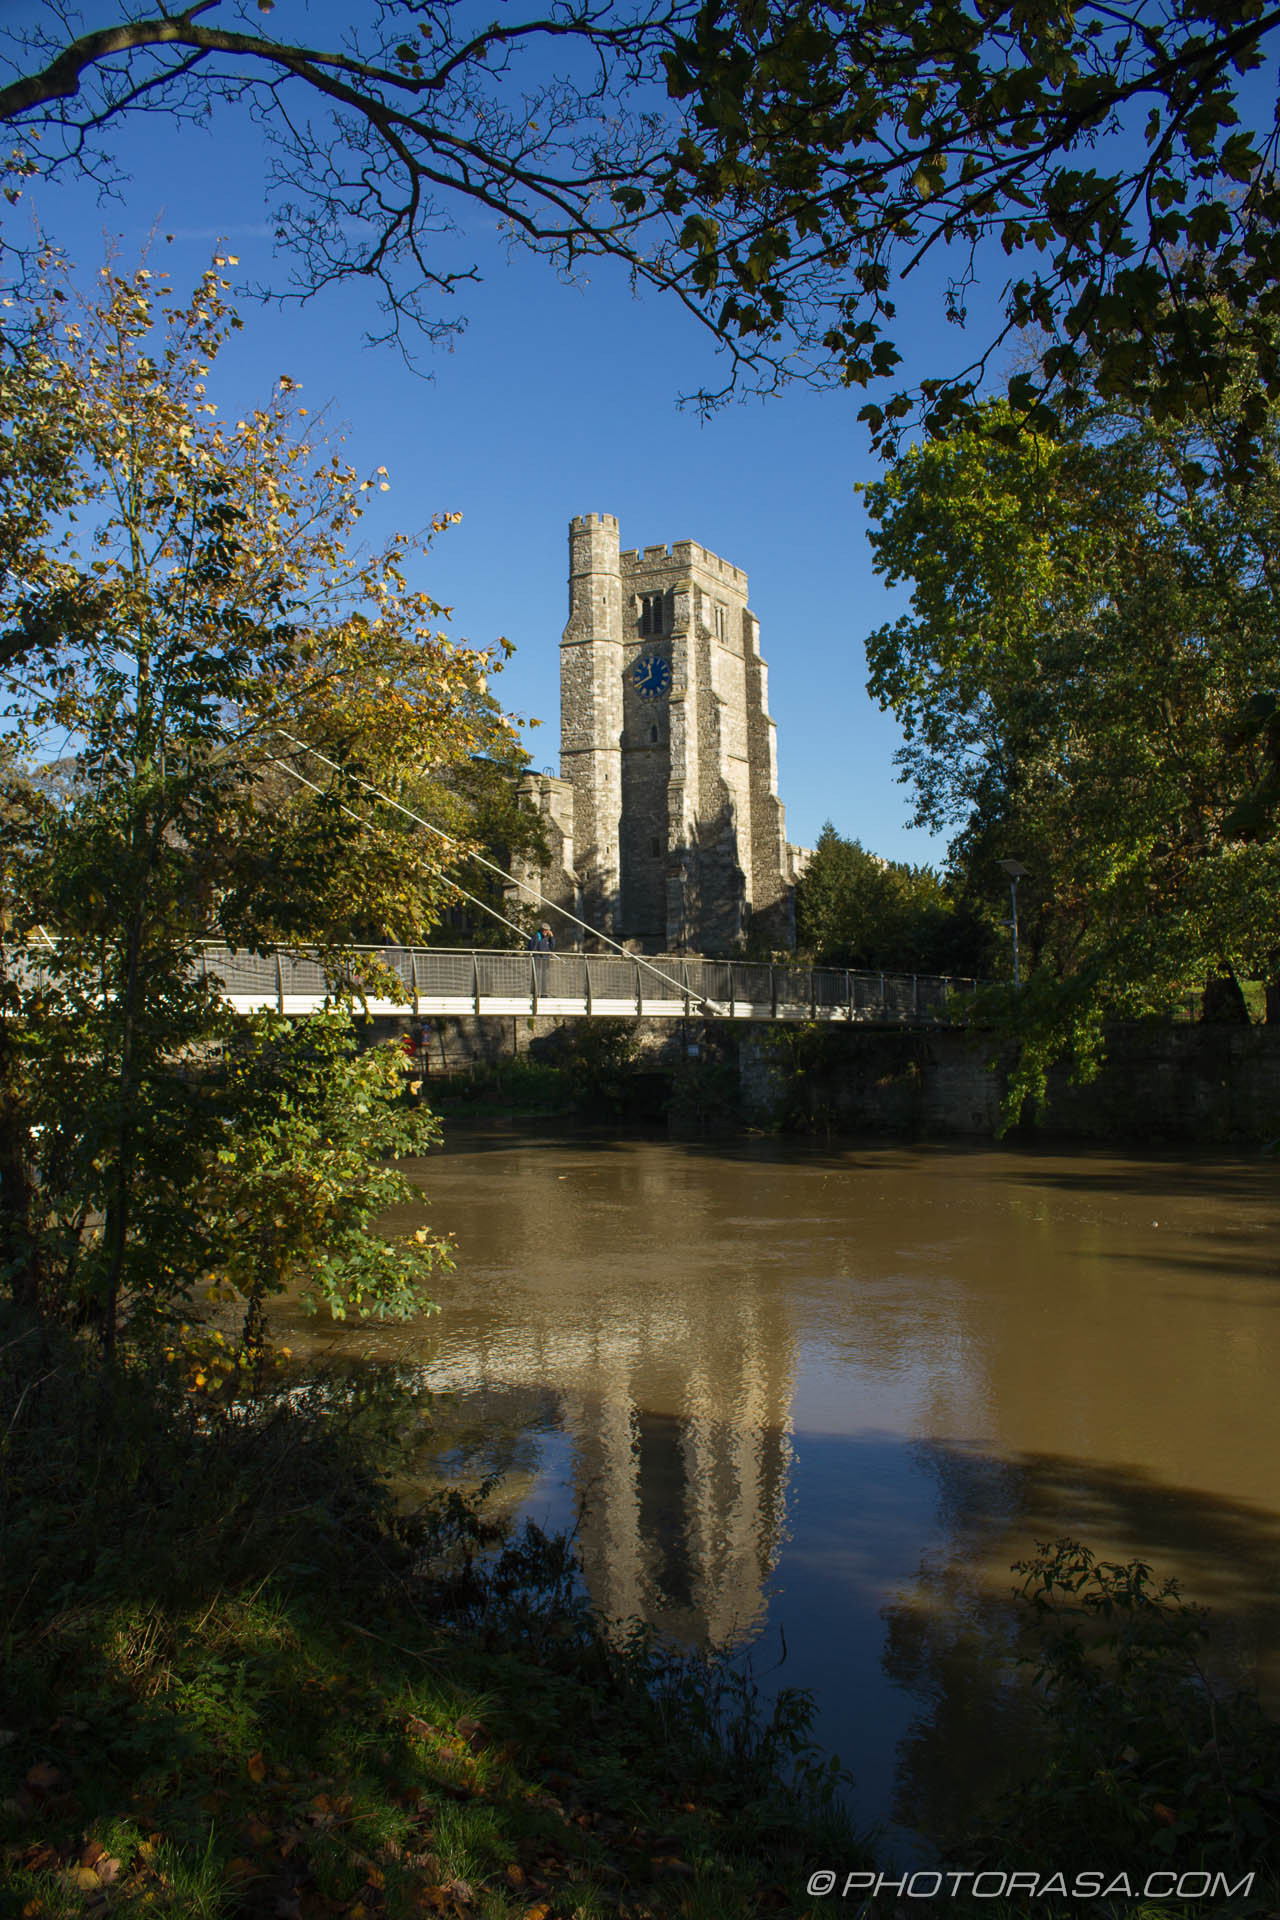 http://photorasa.com/inside-all-saints-church-in-maidstone/all-saints-church-from-across-the-river/